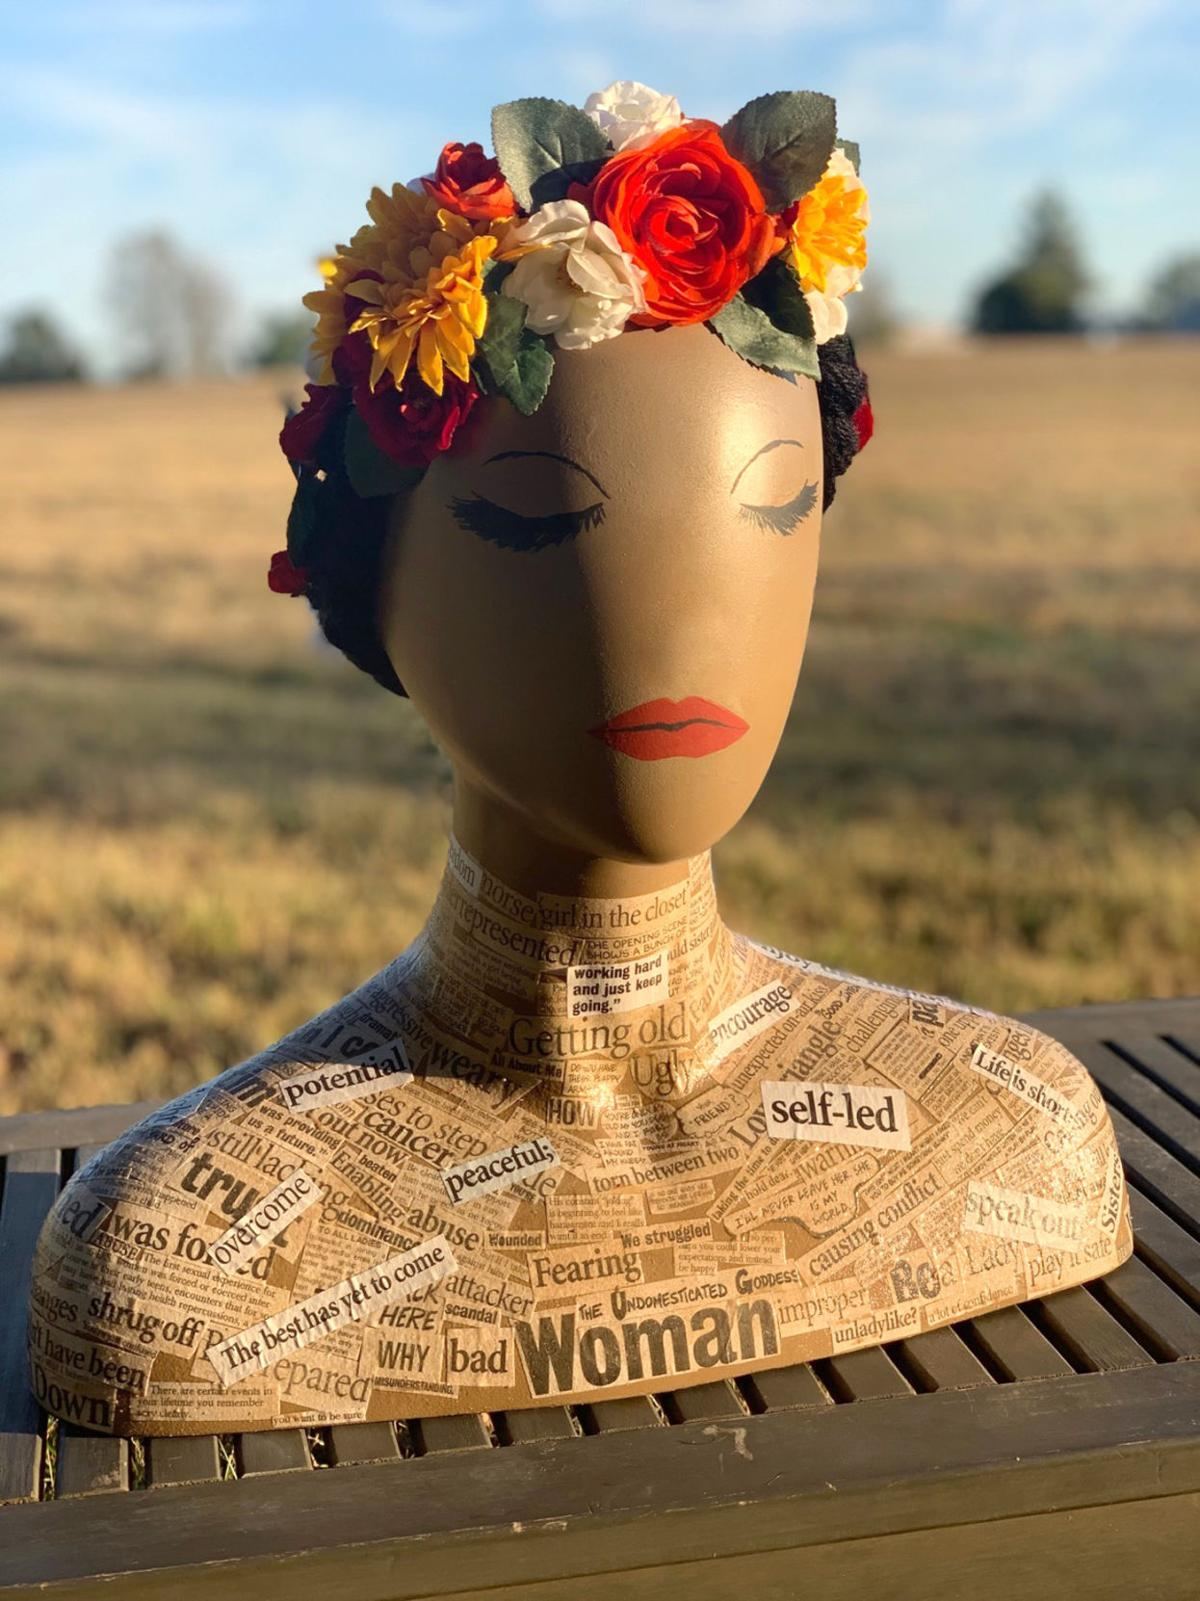 Wig Stand Palooza accepts bids for unique art